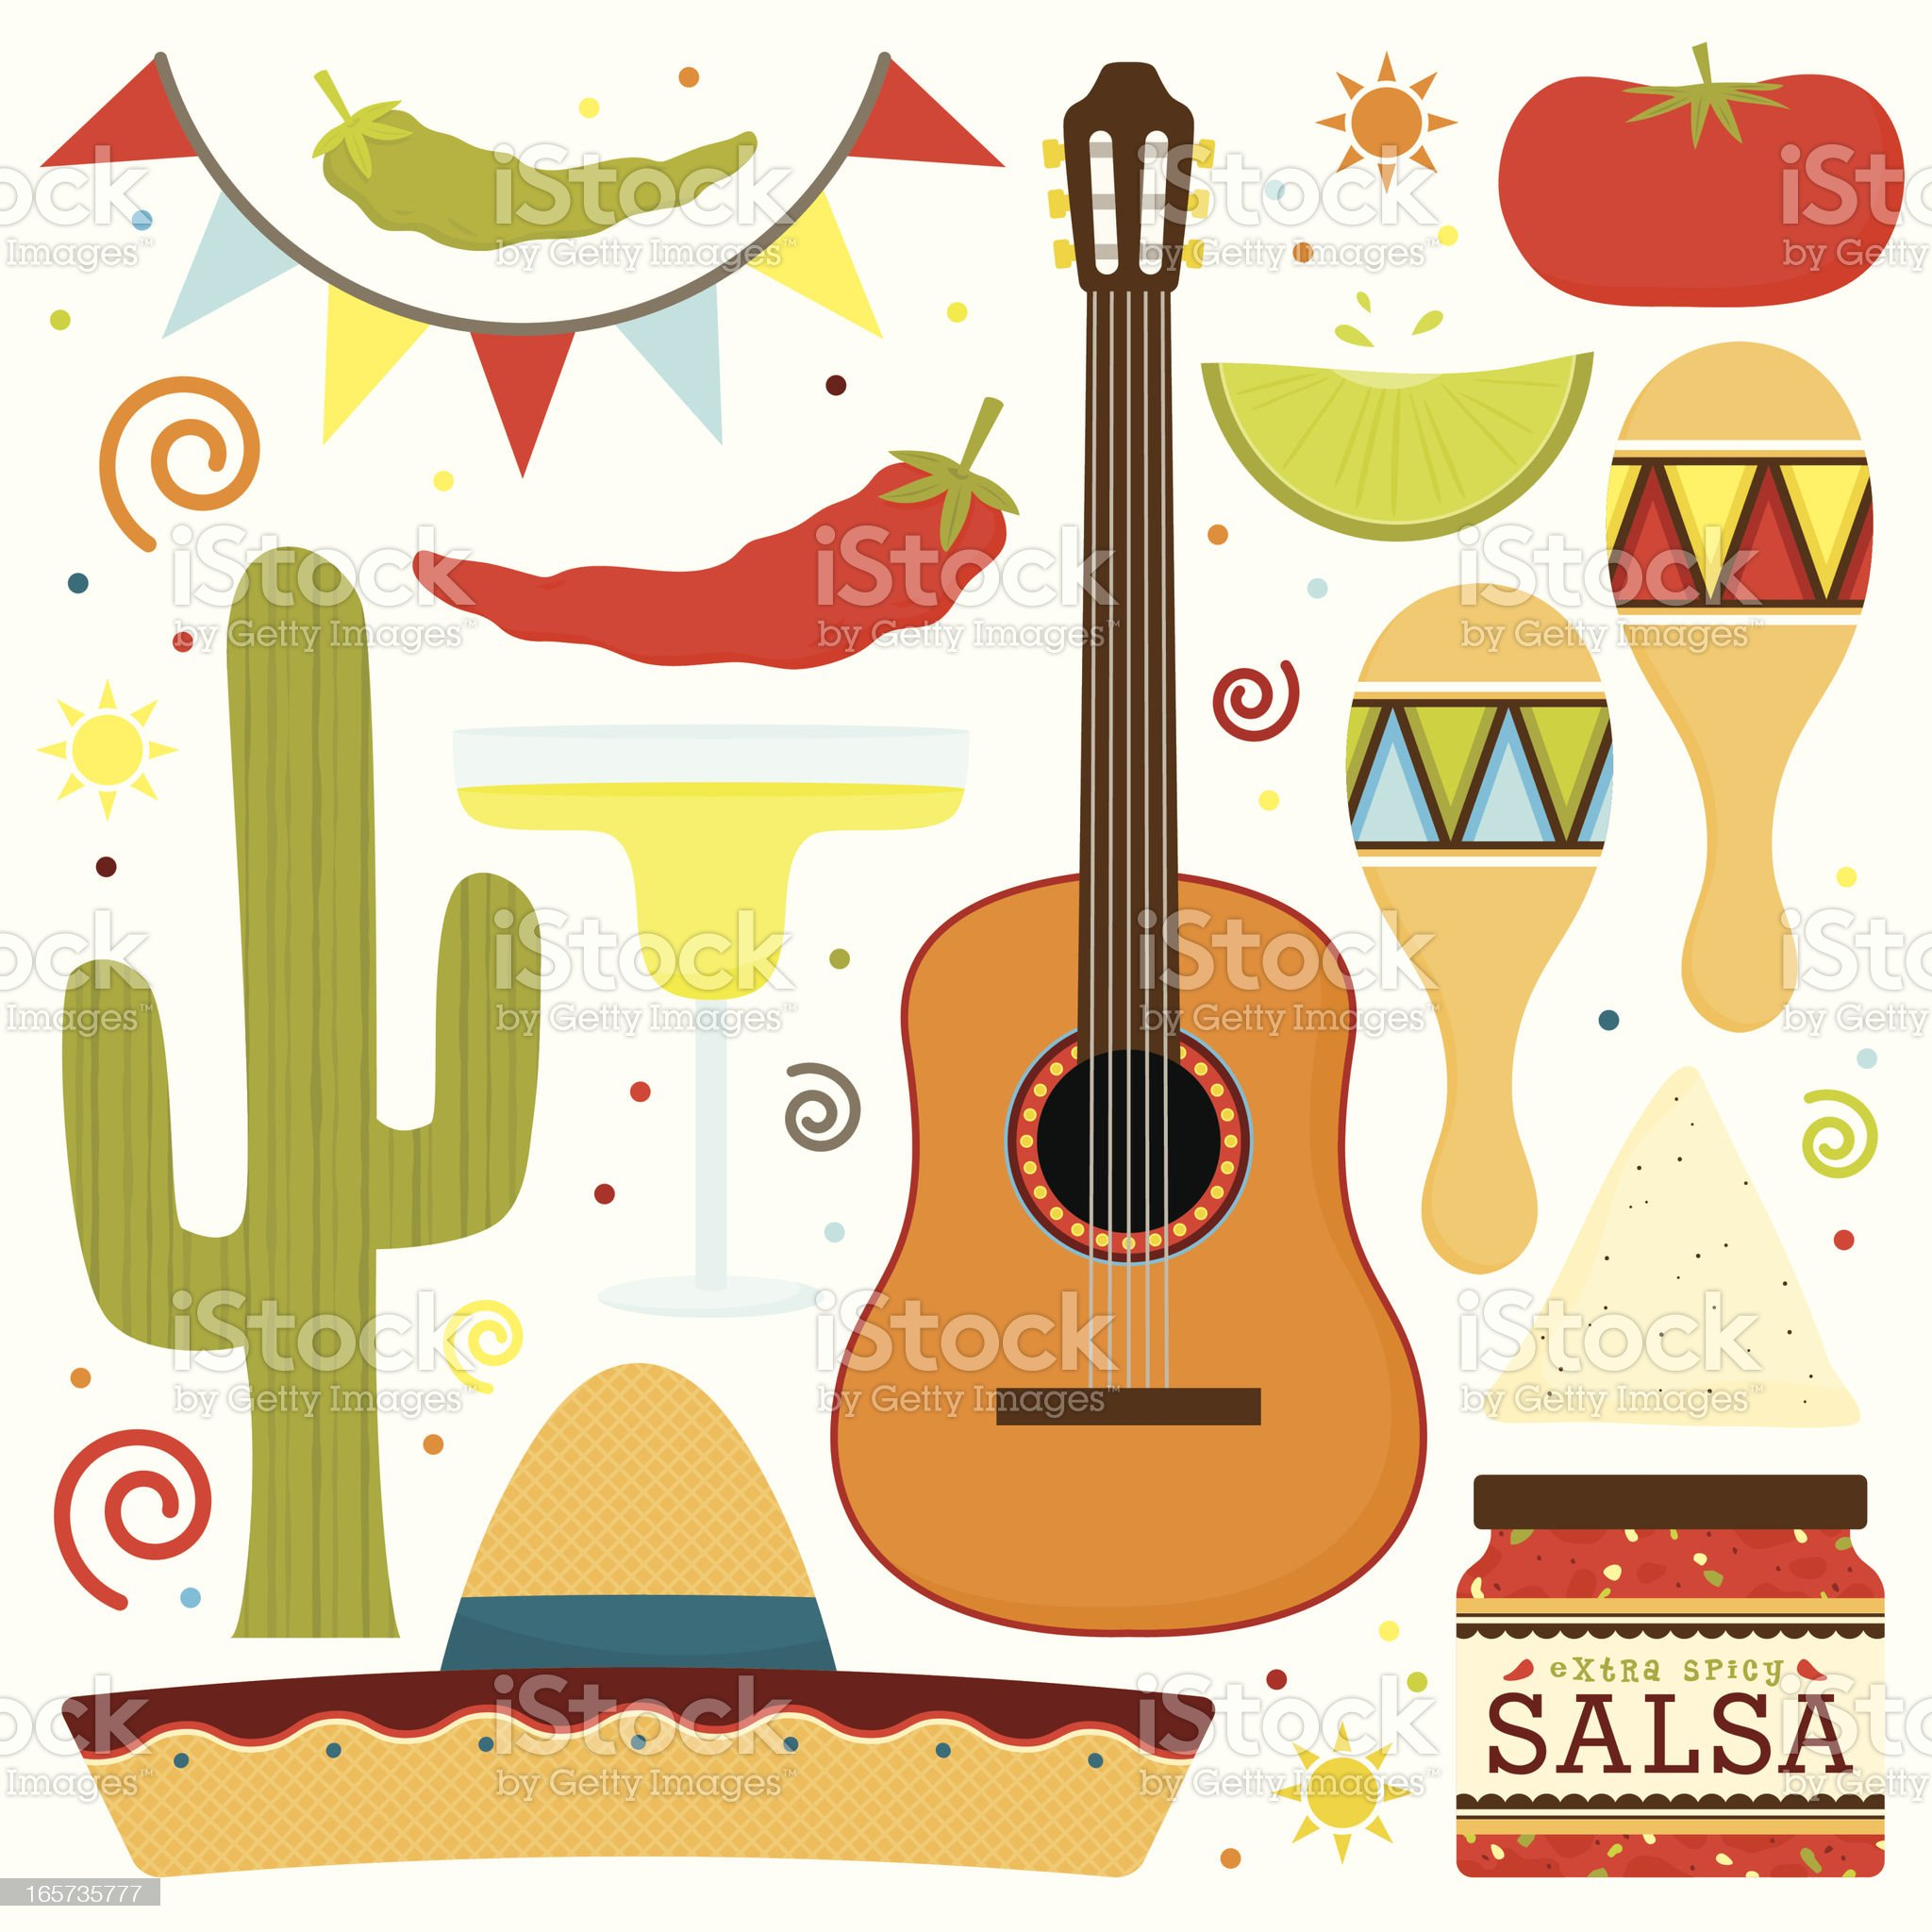 Traditional Mexican Fiesta royalty-free stock vector art